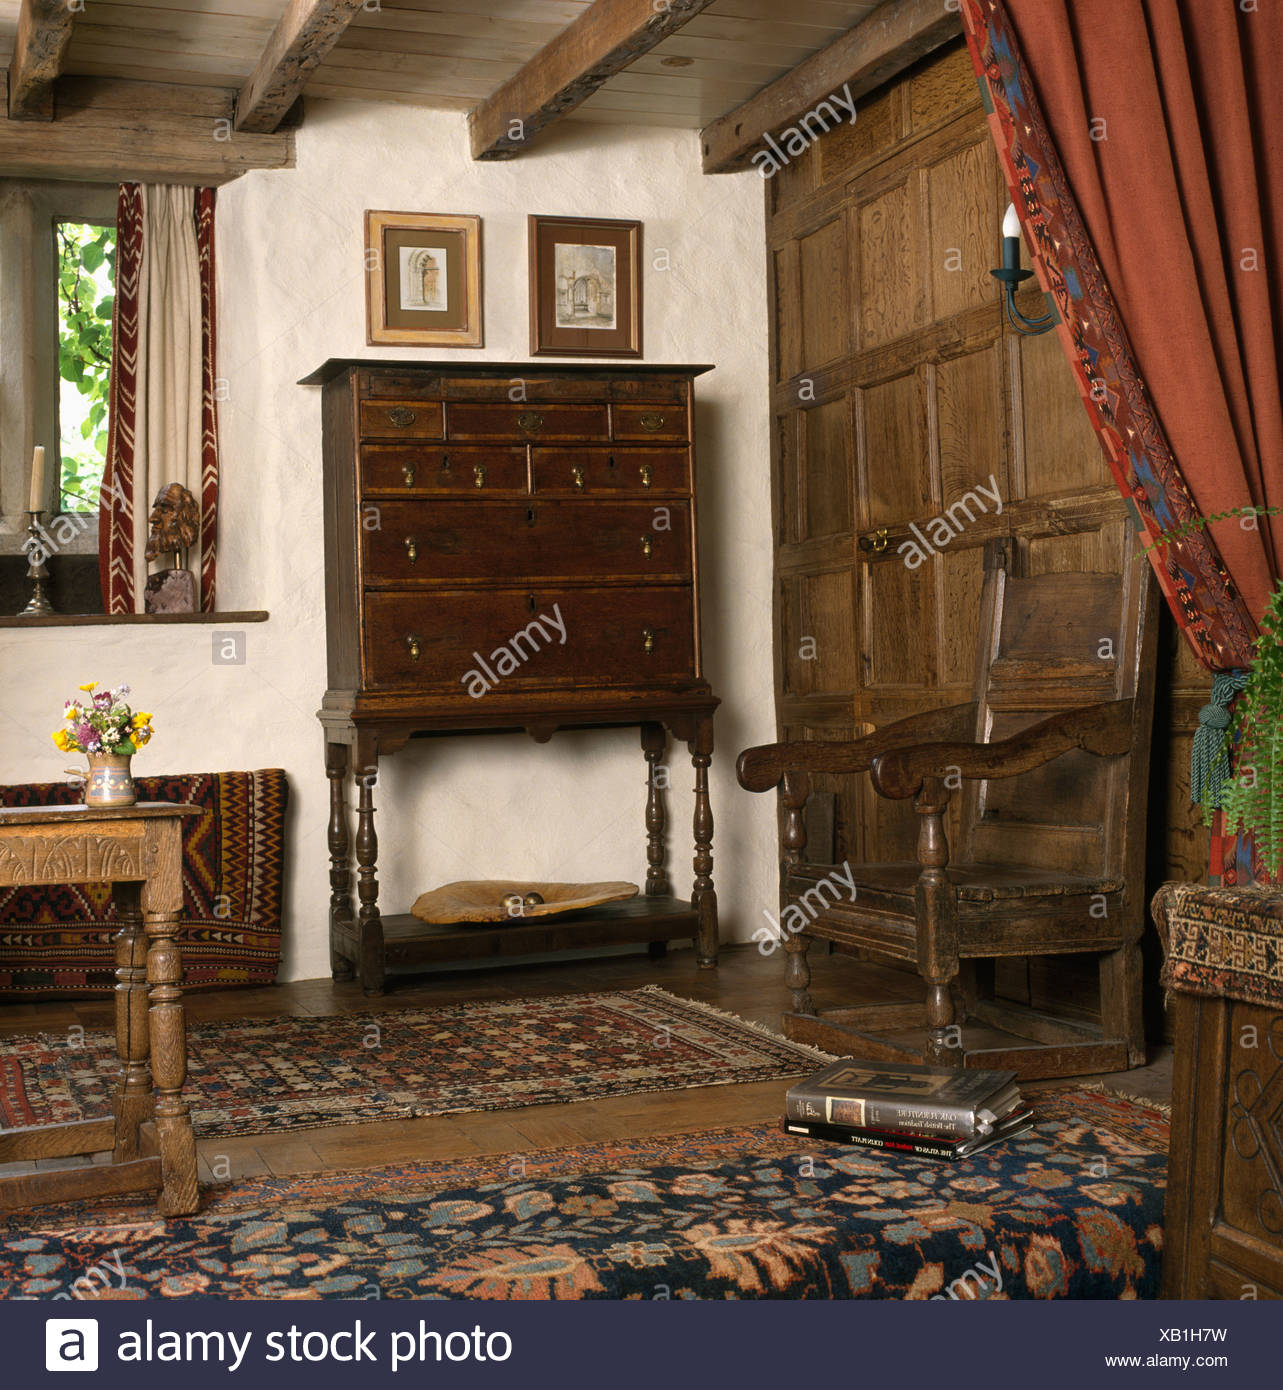 Oak paneling and antique oak Jacobean chair and chest-on-stand in country living room Stock Photo